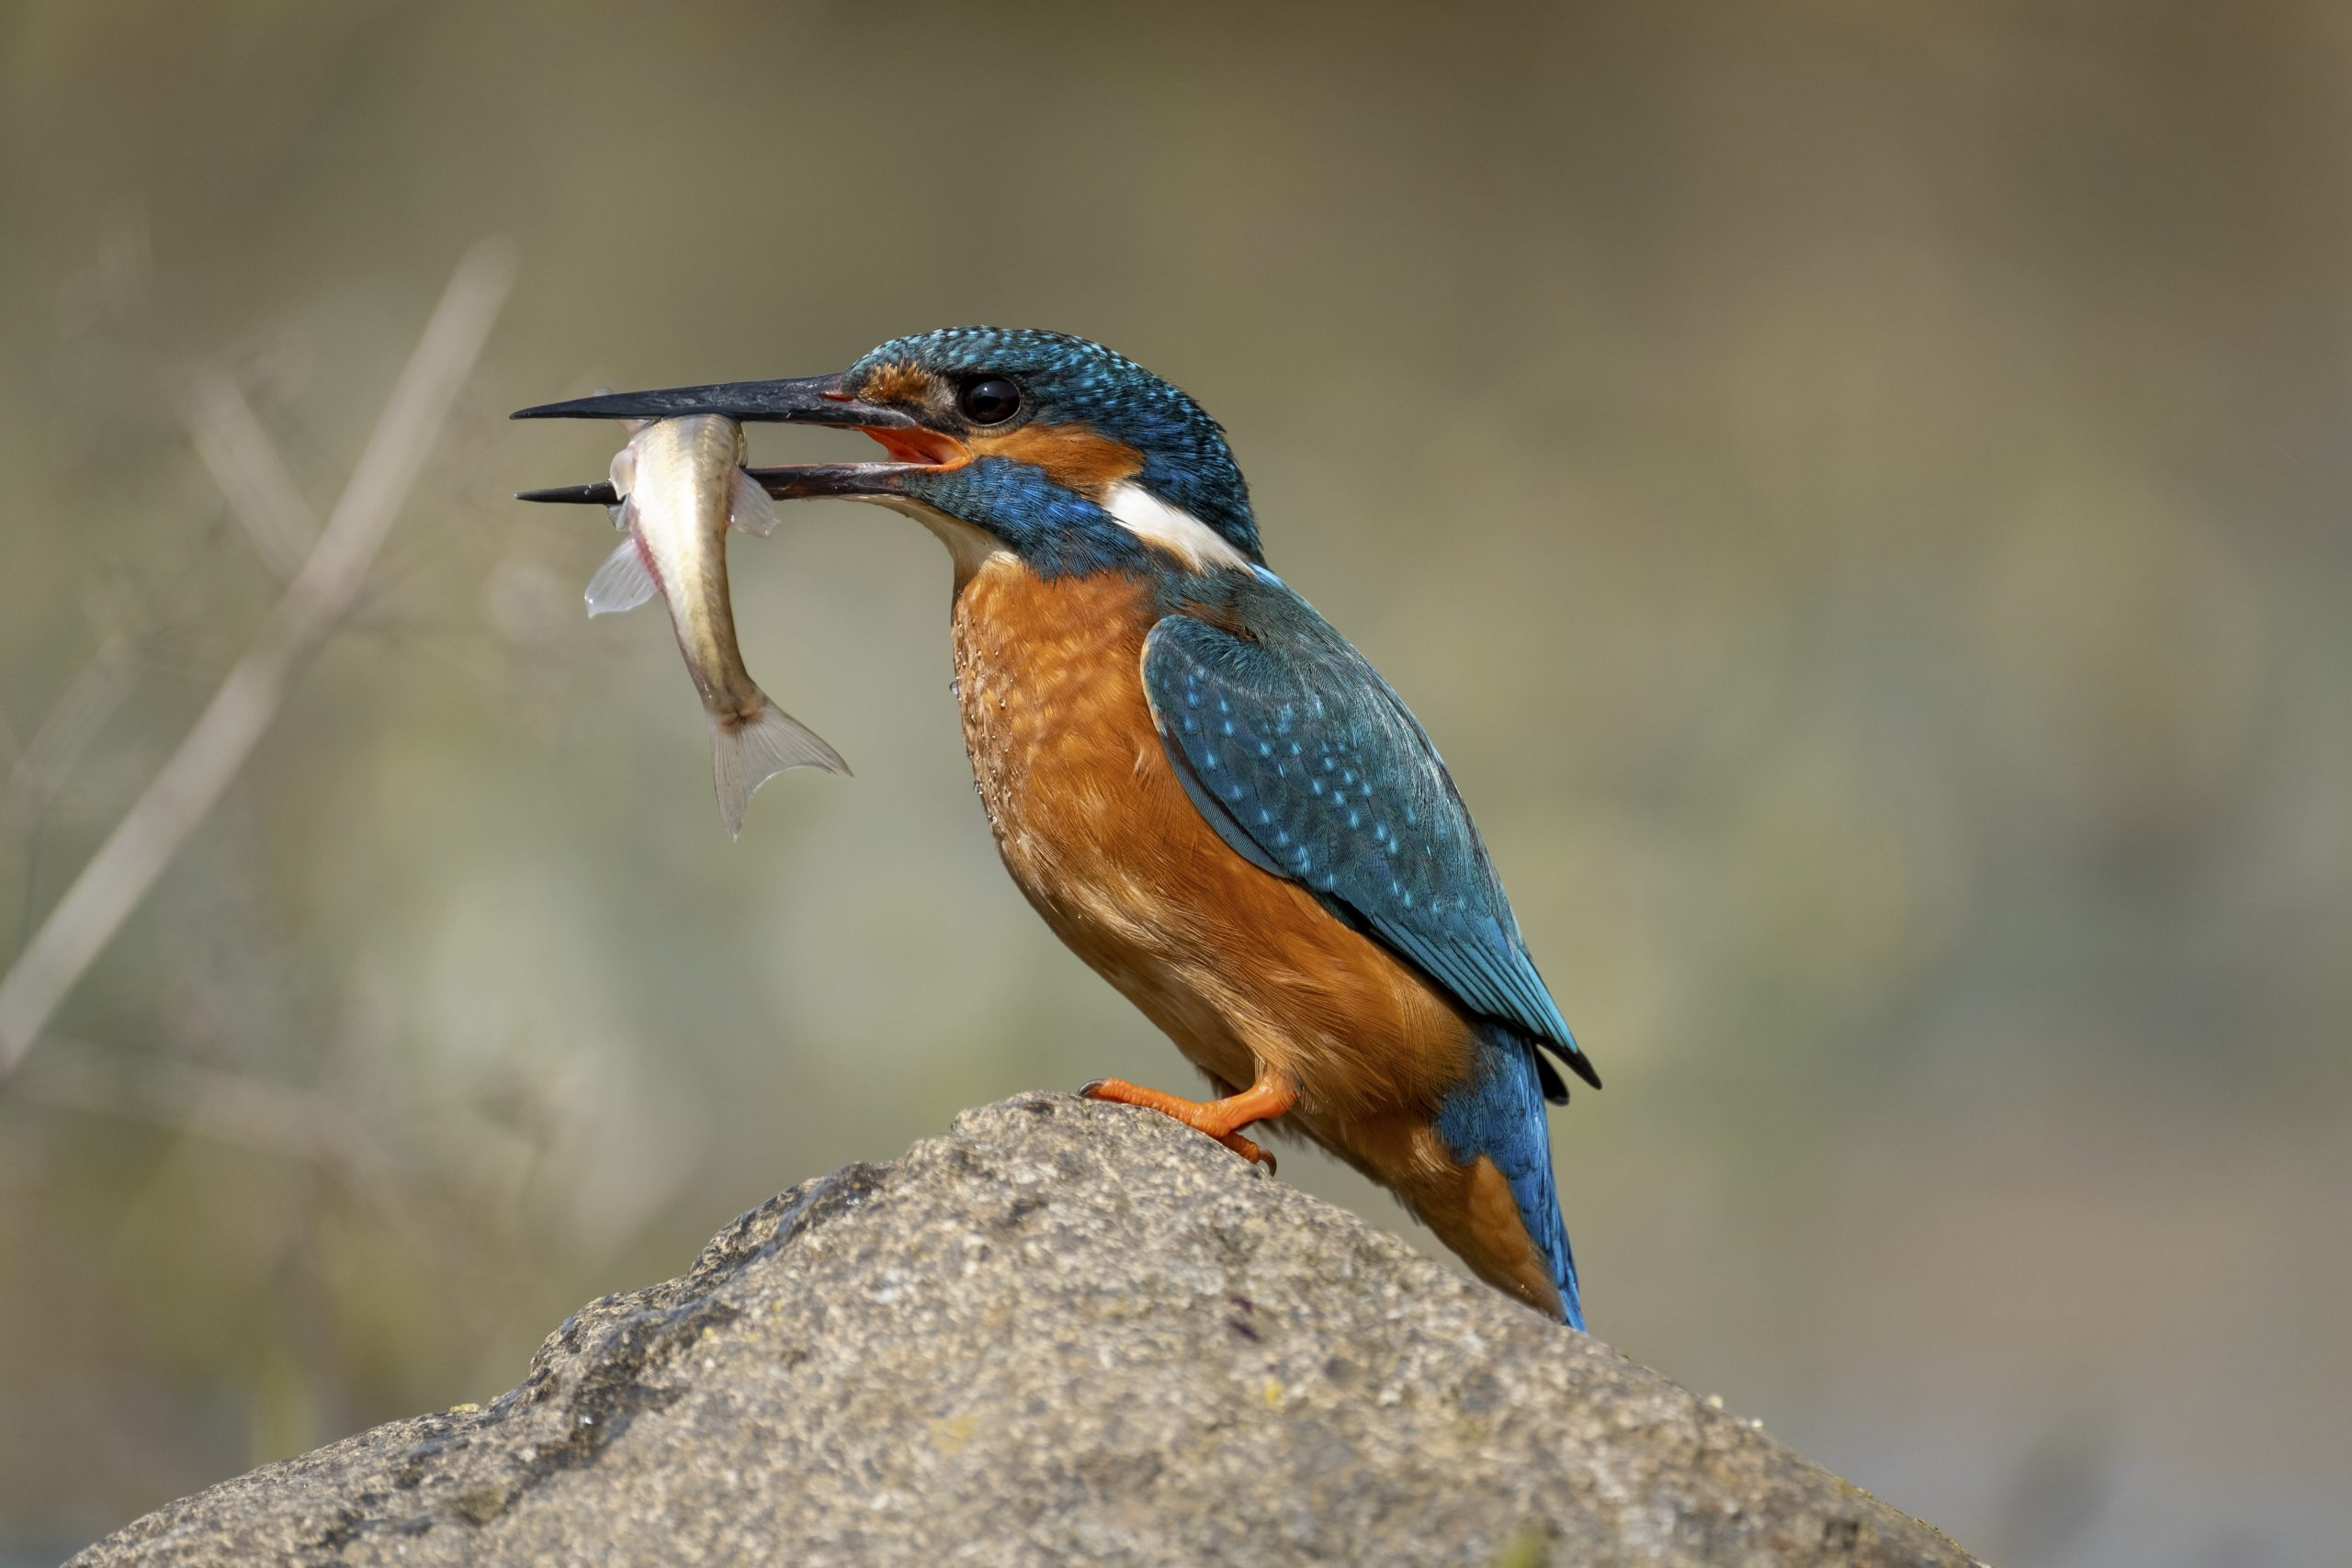 Kingfisher with a Minnow © Jack Perks - A common bird on the Teign, can be tricky to see!